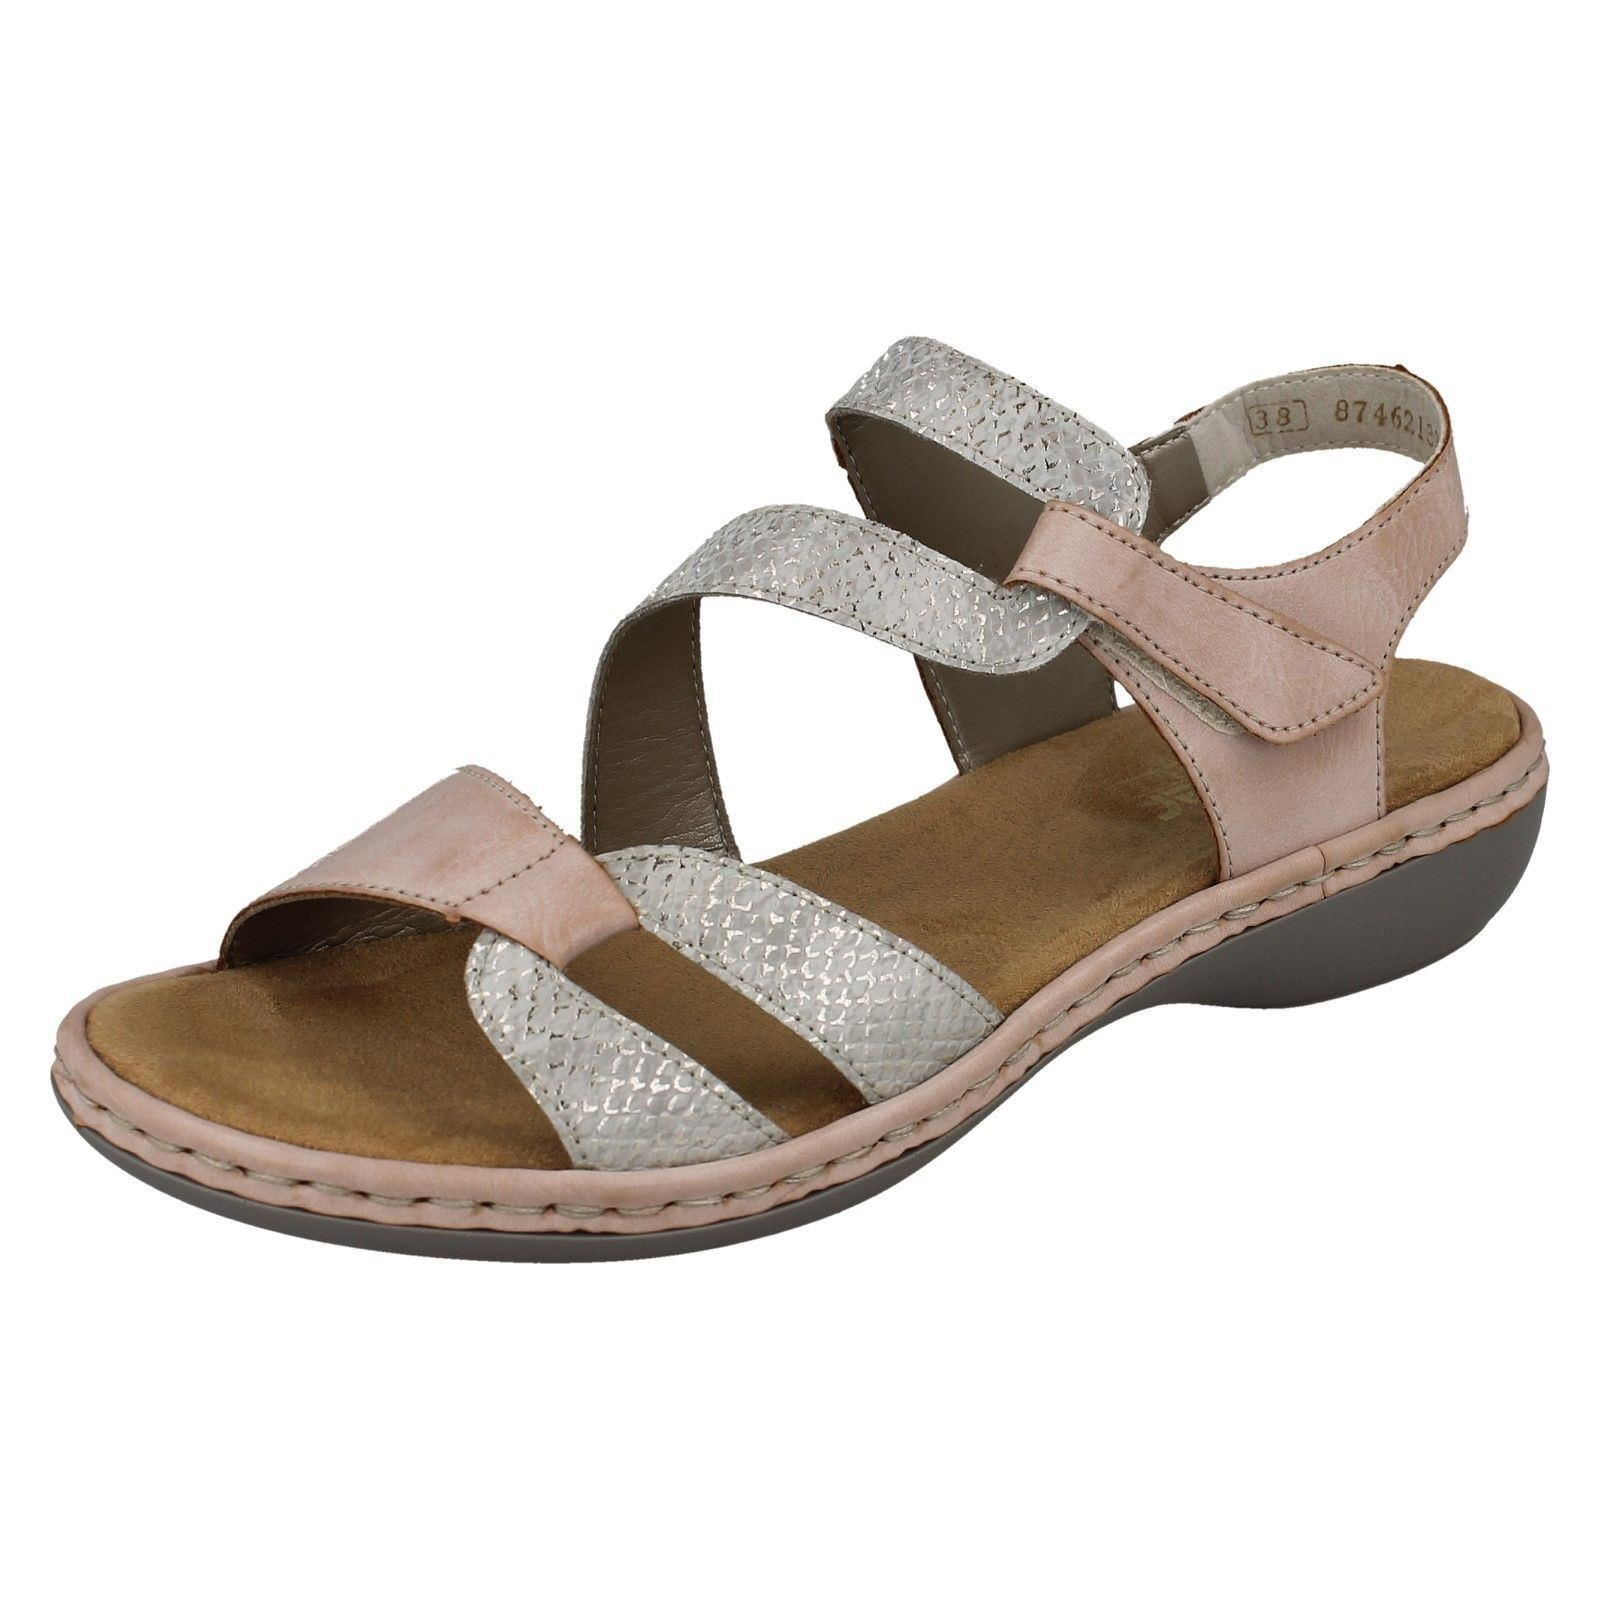 Ladies Rieker 65969 Synthetic Strappy Casual Sandals